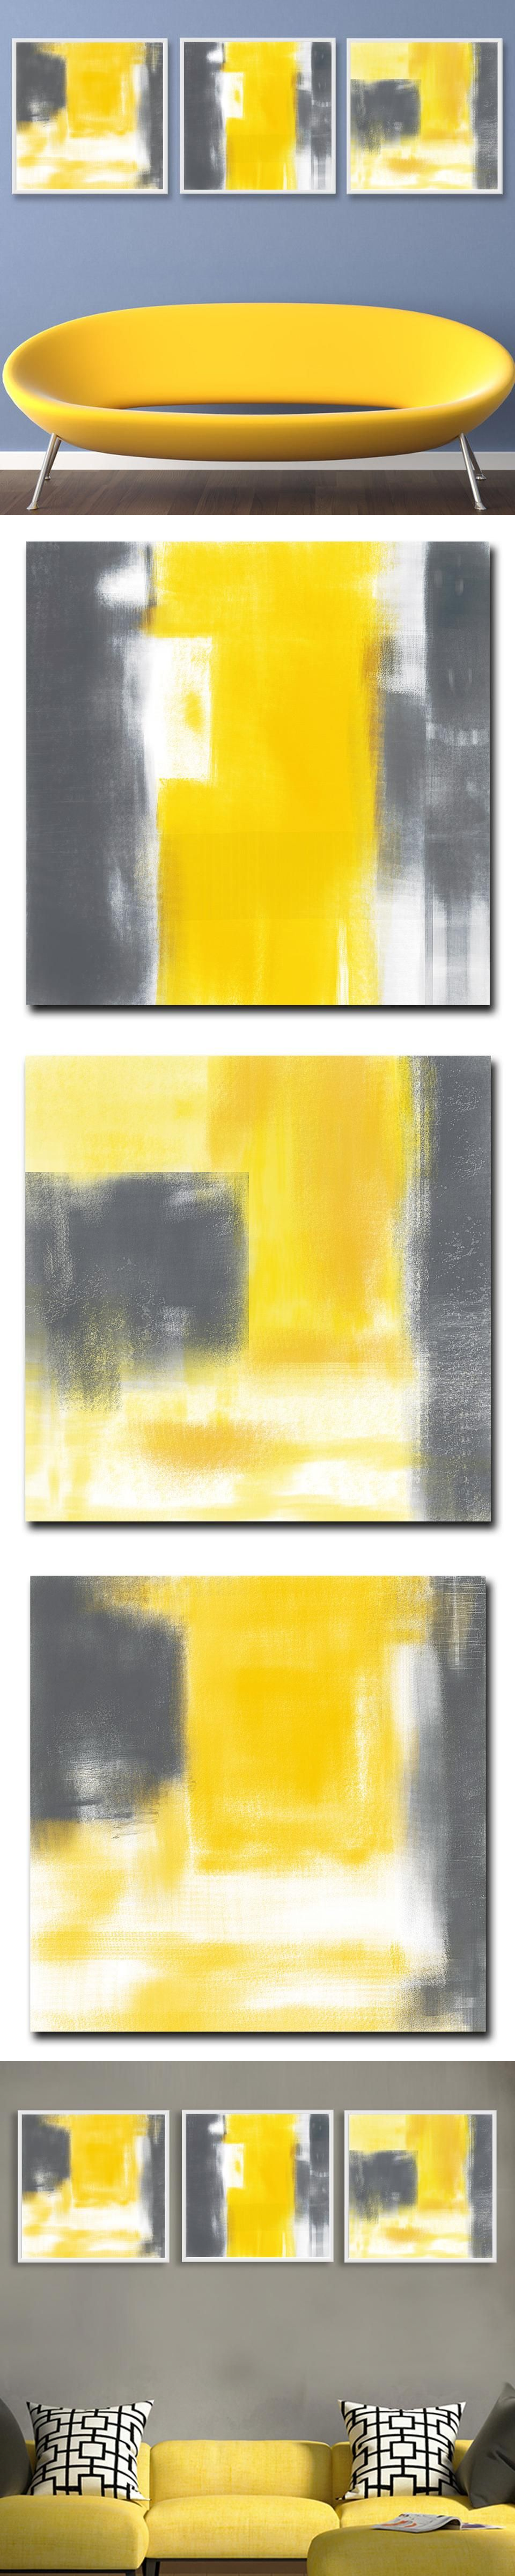 Yellow And Gray Abstract Minimalism Art Canvas Poster Print ...